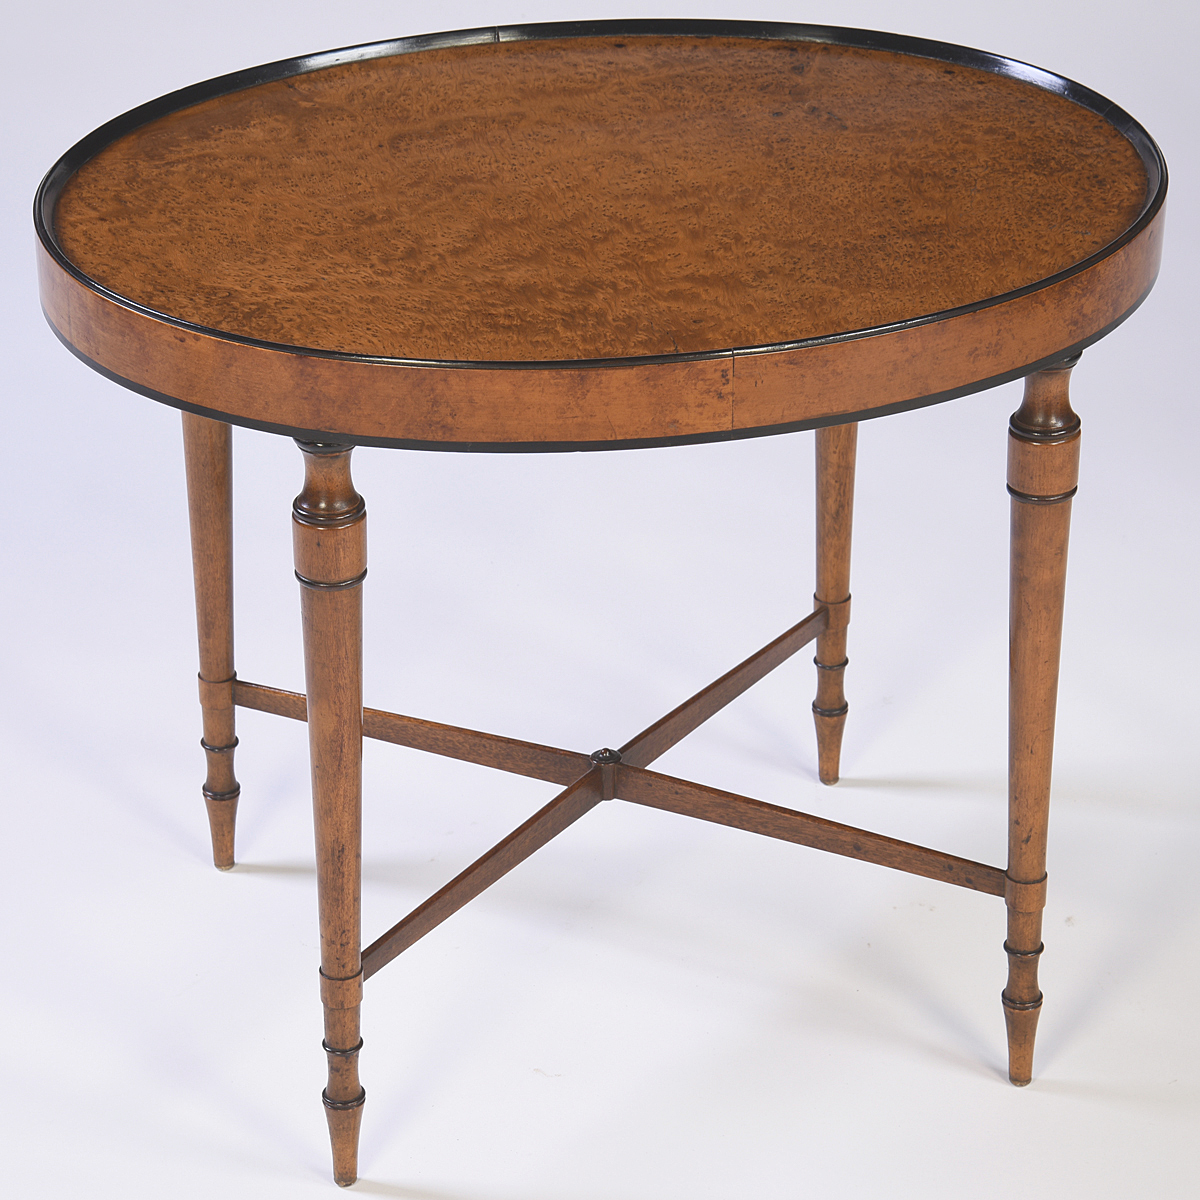 Oval Coffee Table Antique: English Antiques - Caledonian